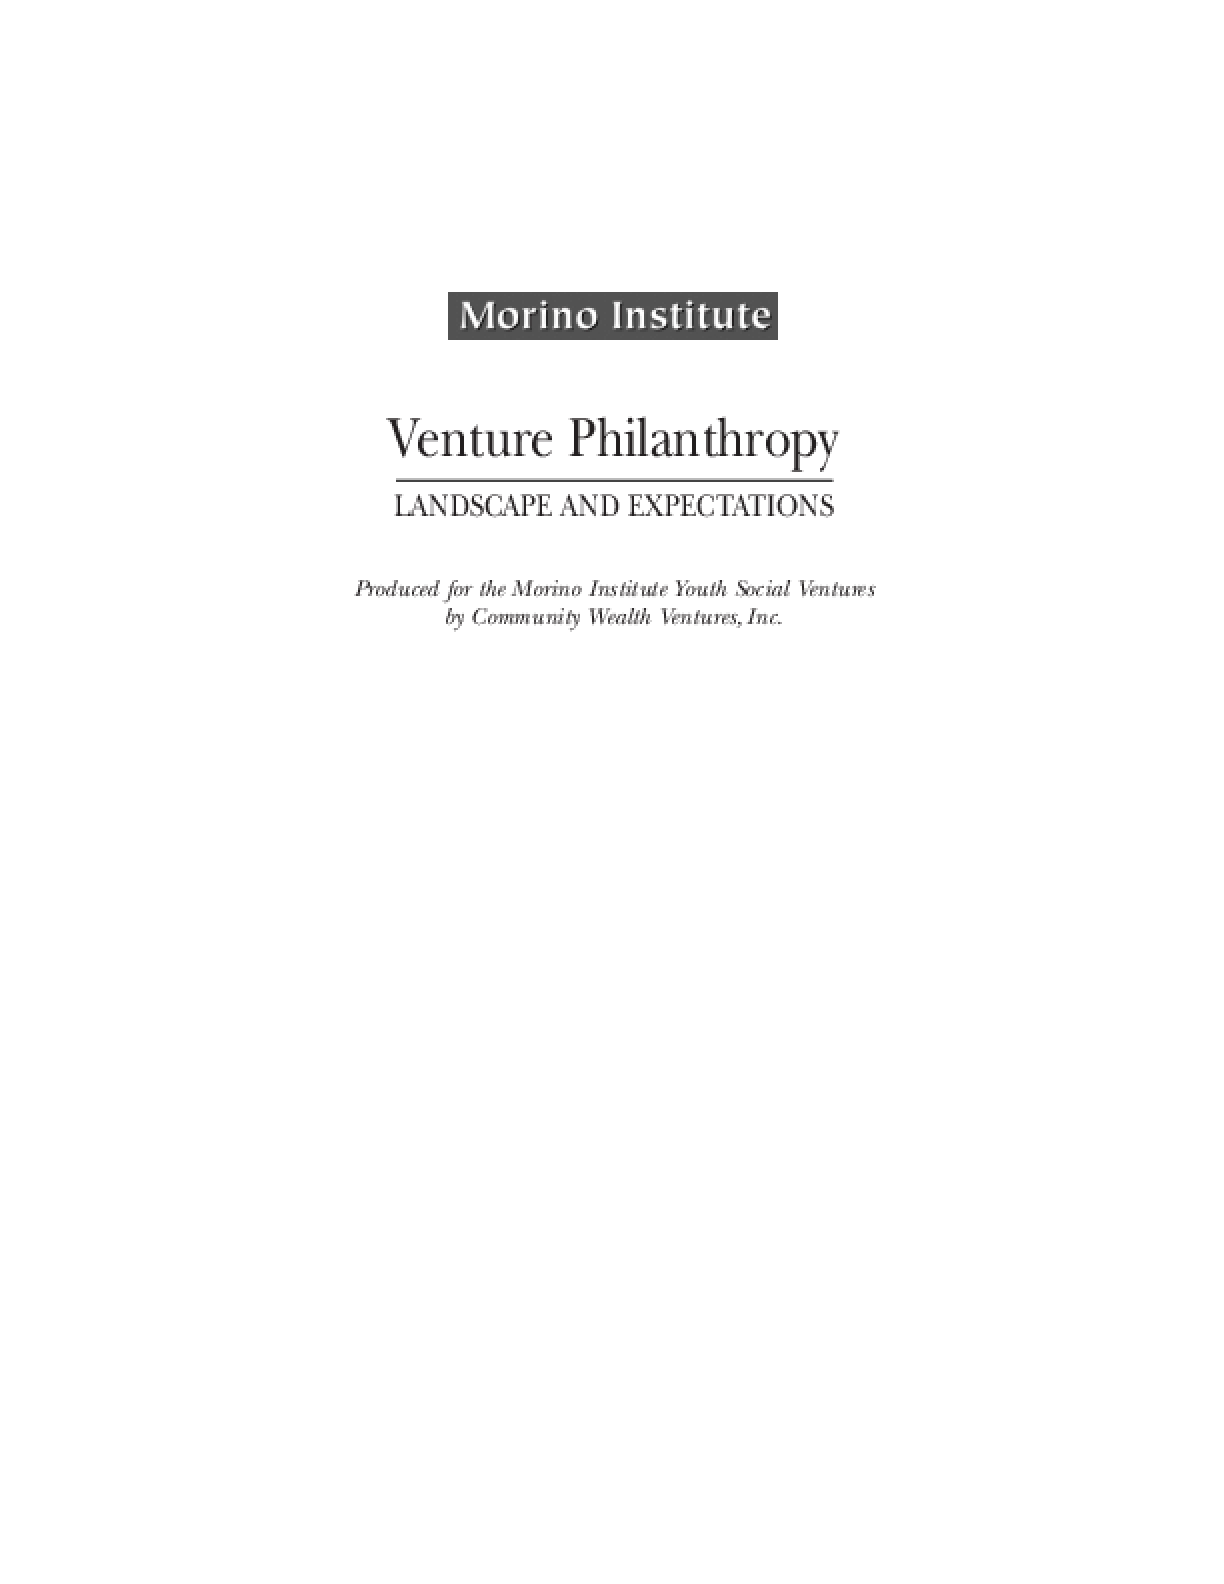 Venture Philanthropy: Landscape and Expectations